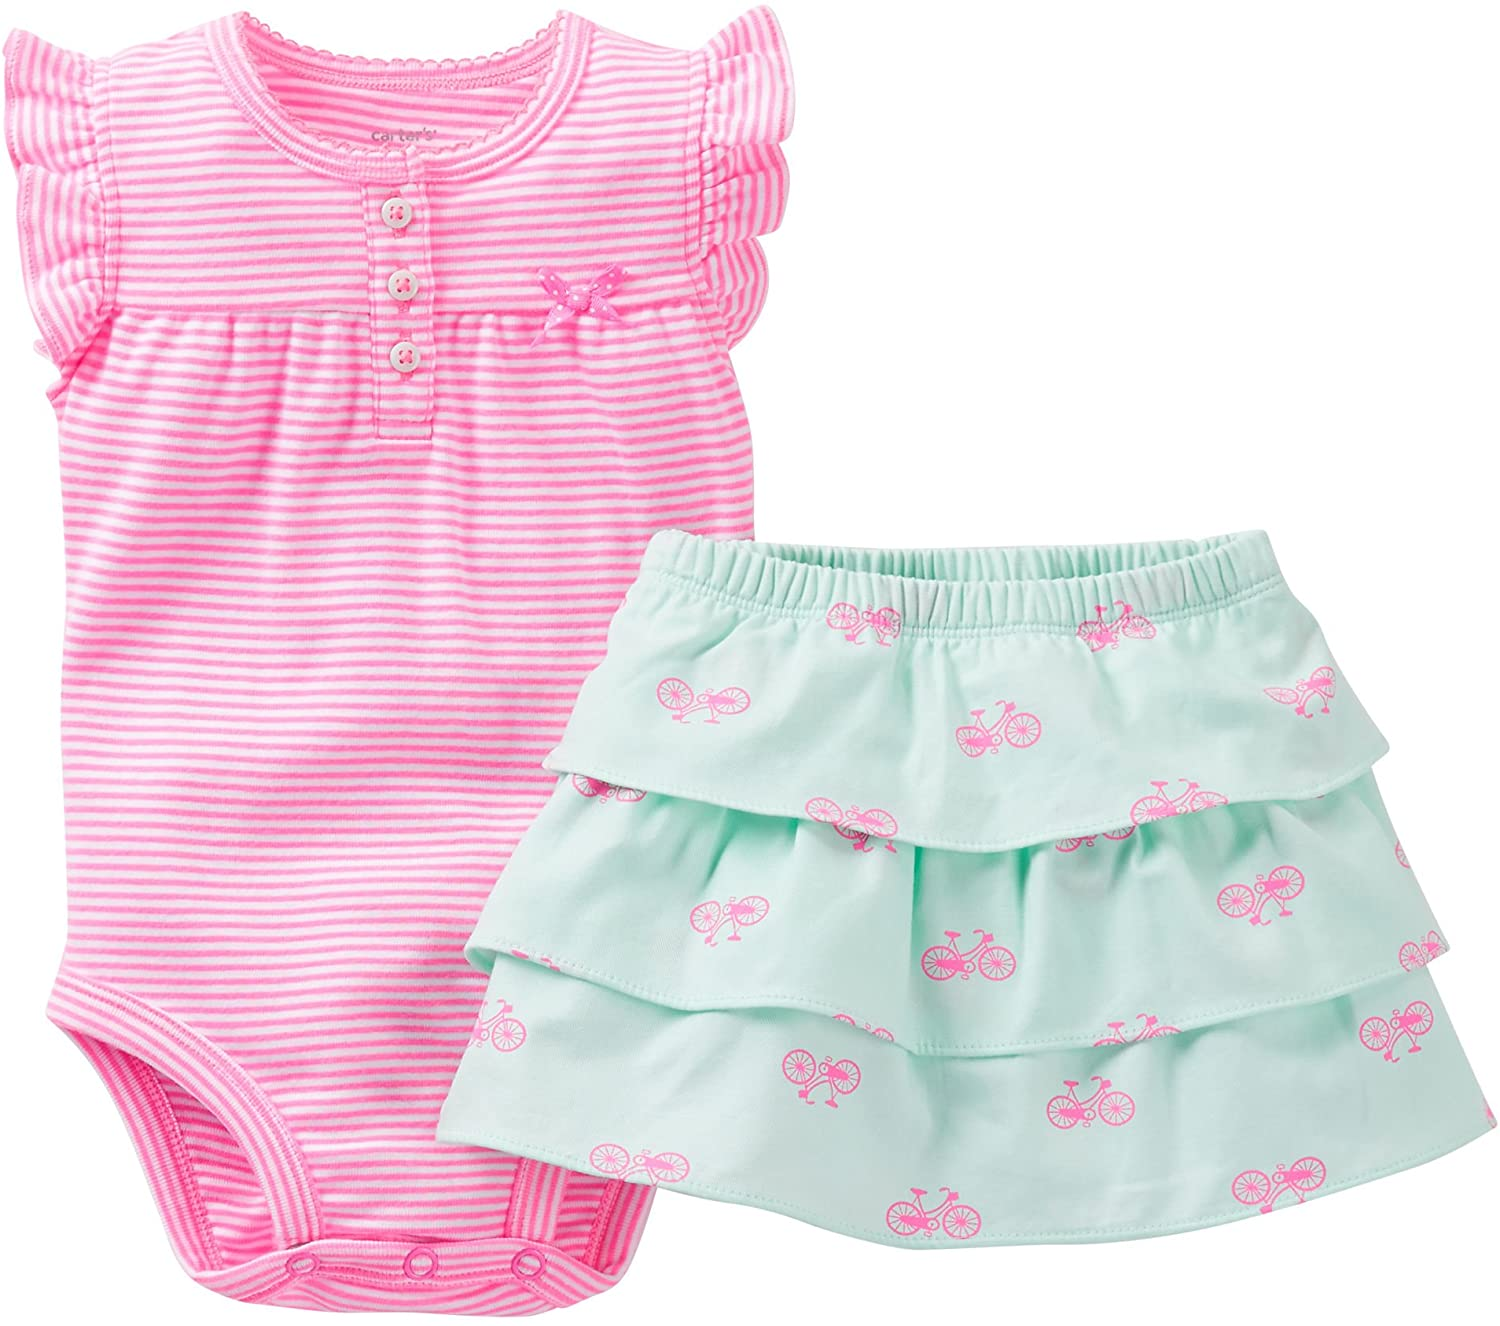 Carter's Baby Girls' 2 Piece Bodysuit & Skirt Set